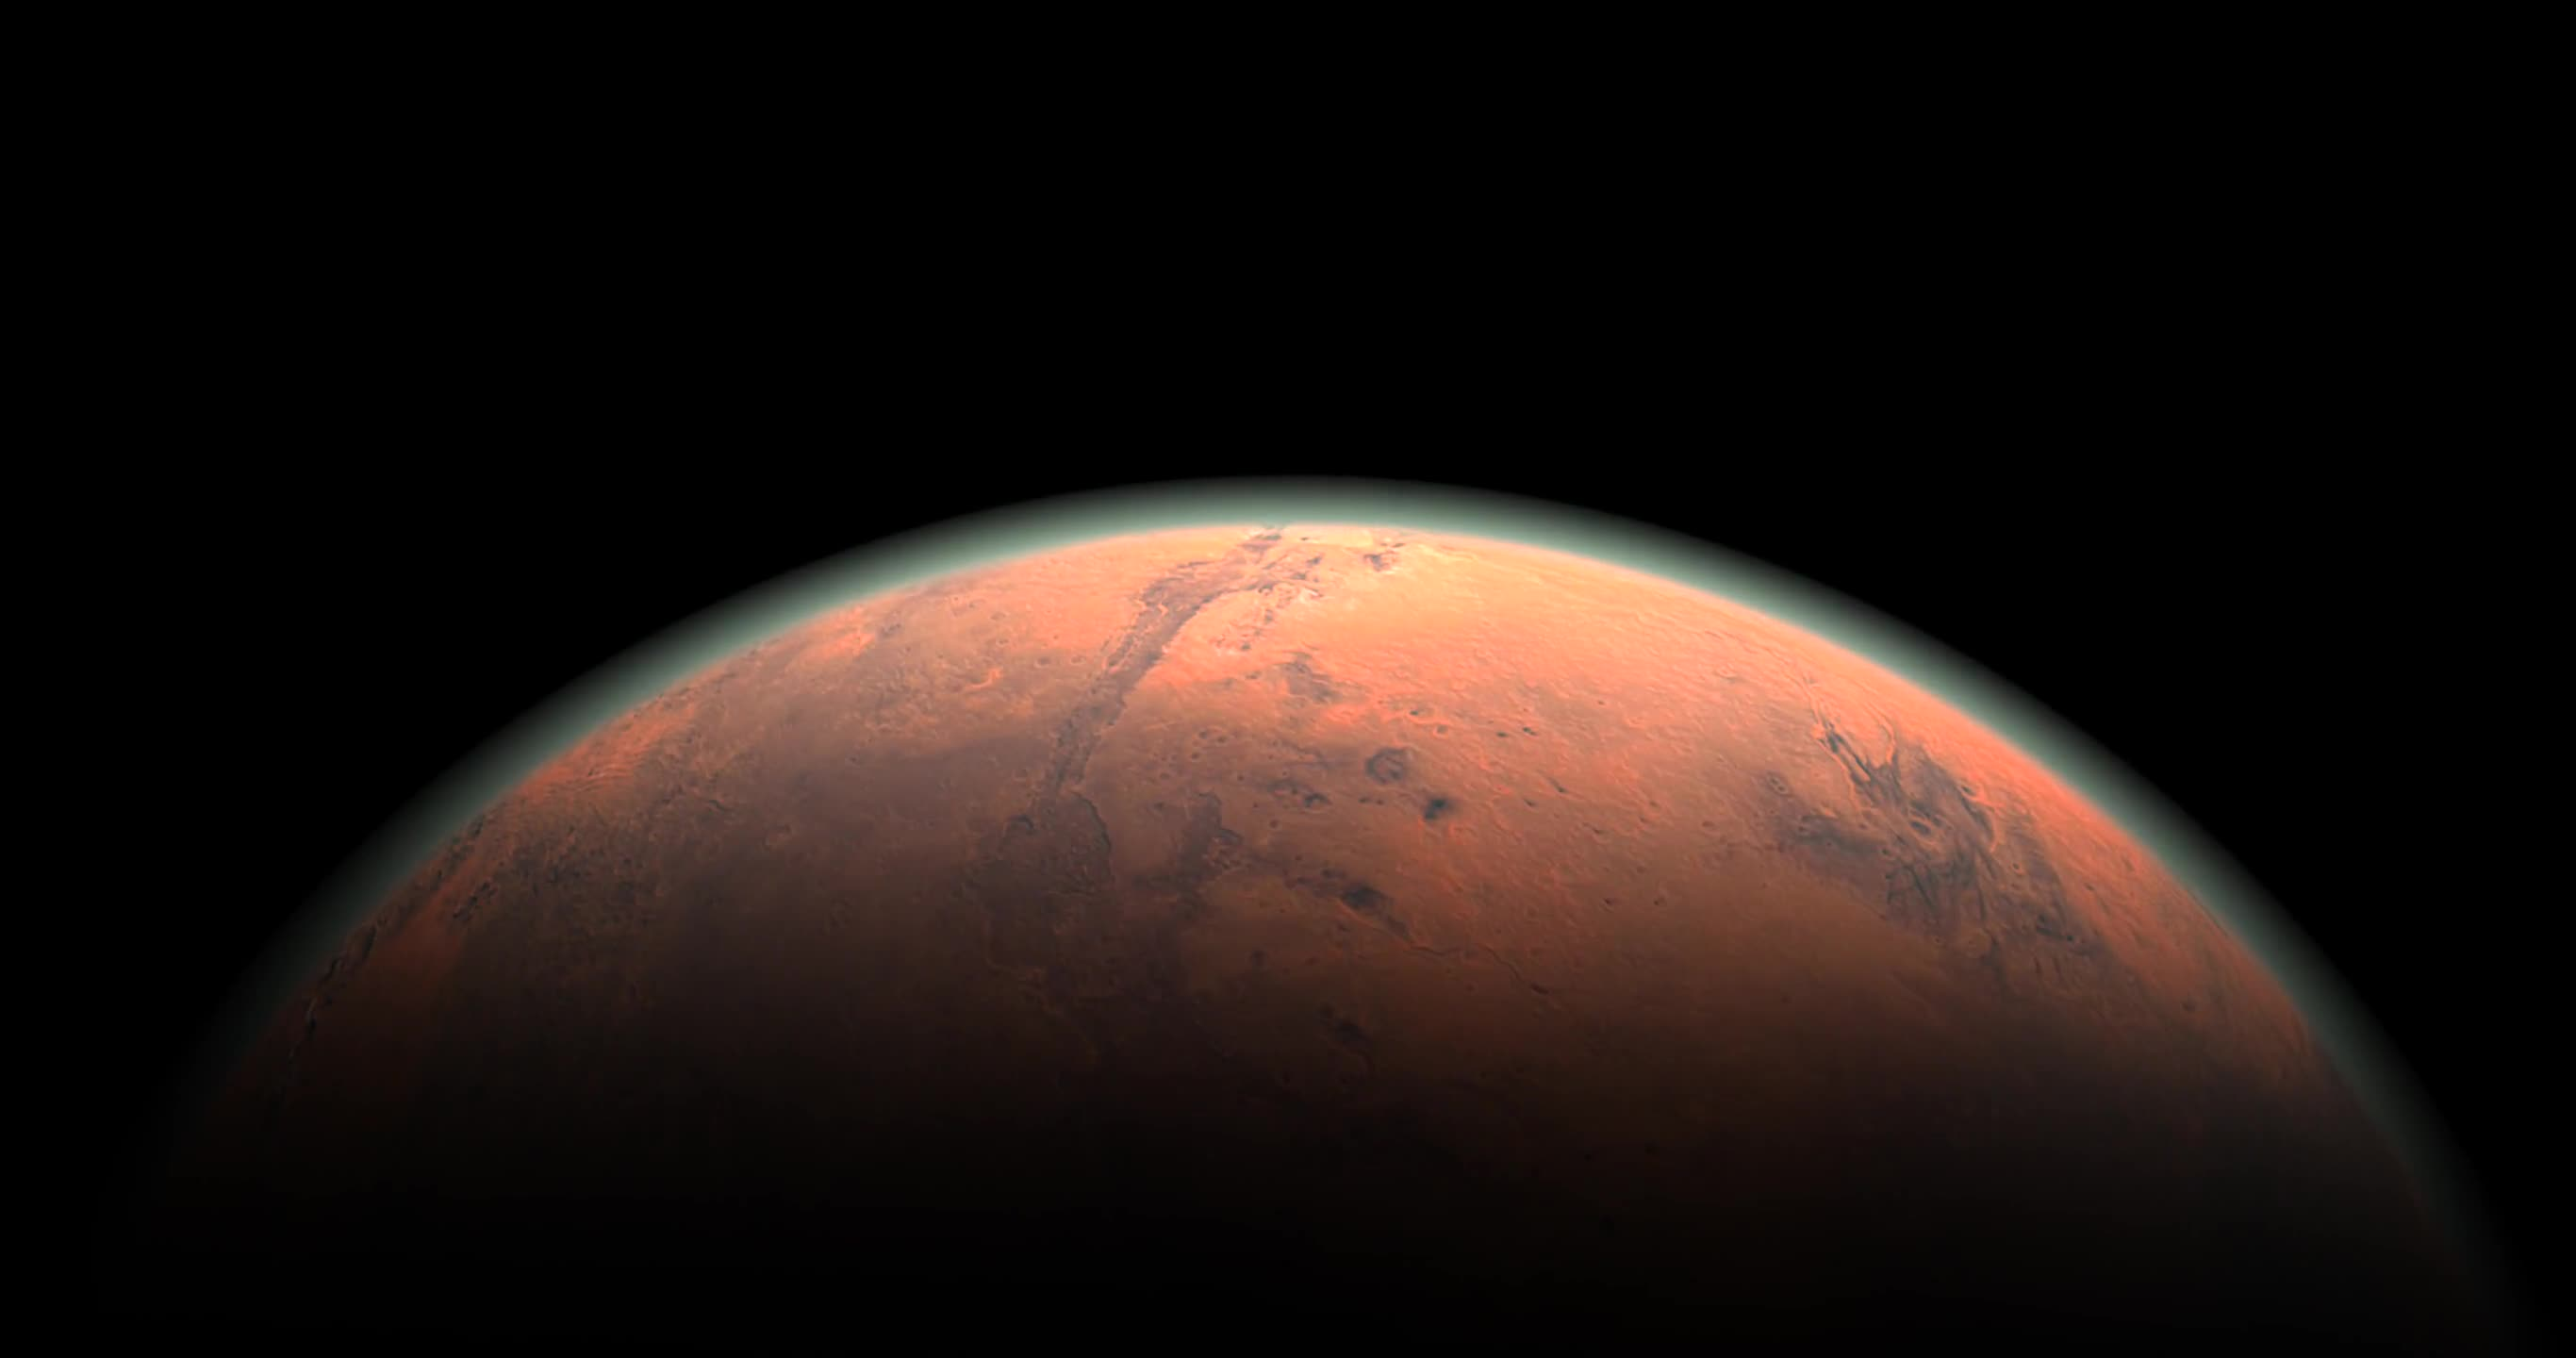 Mars horizon approximation the red planet